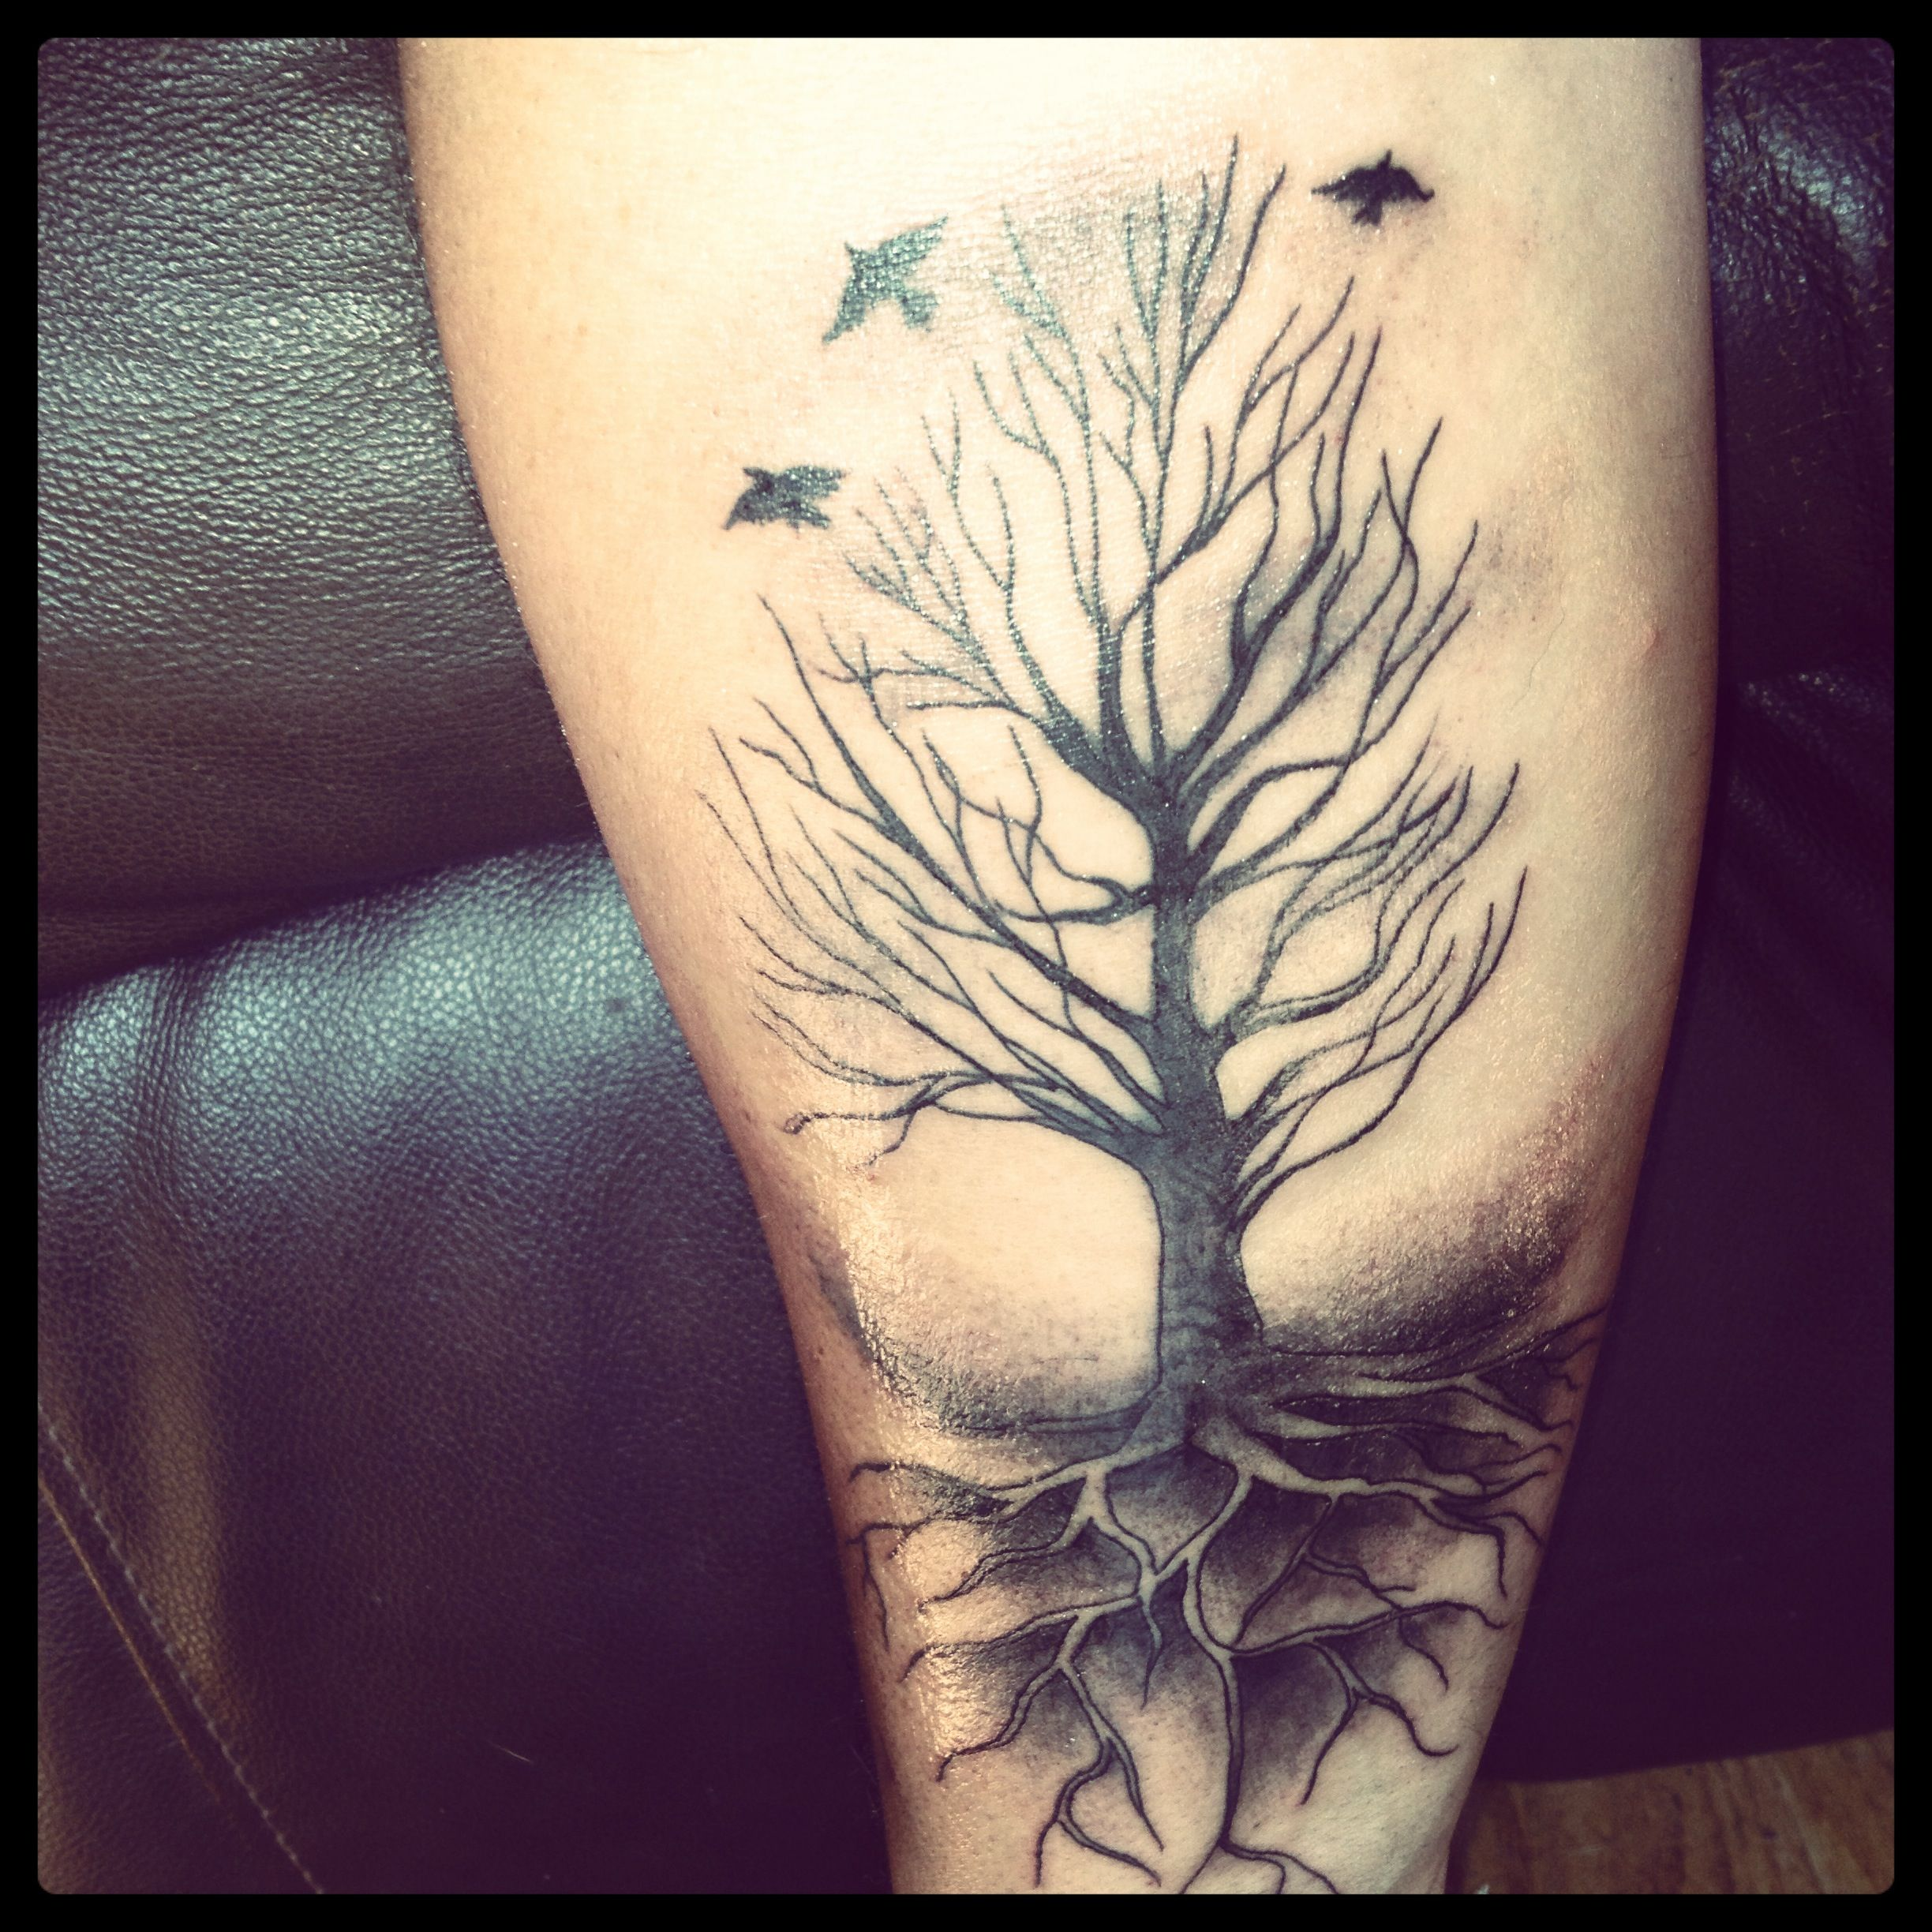 Tree Of Life Tattoo With Heart Roots: Life Tattoos, Sleeve Tattoos, Tattoos